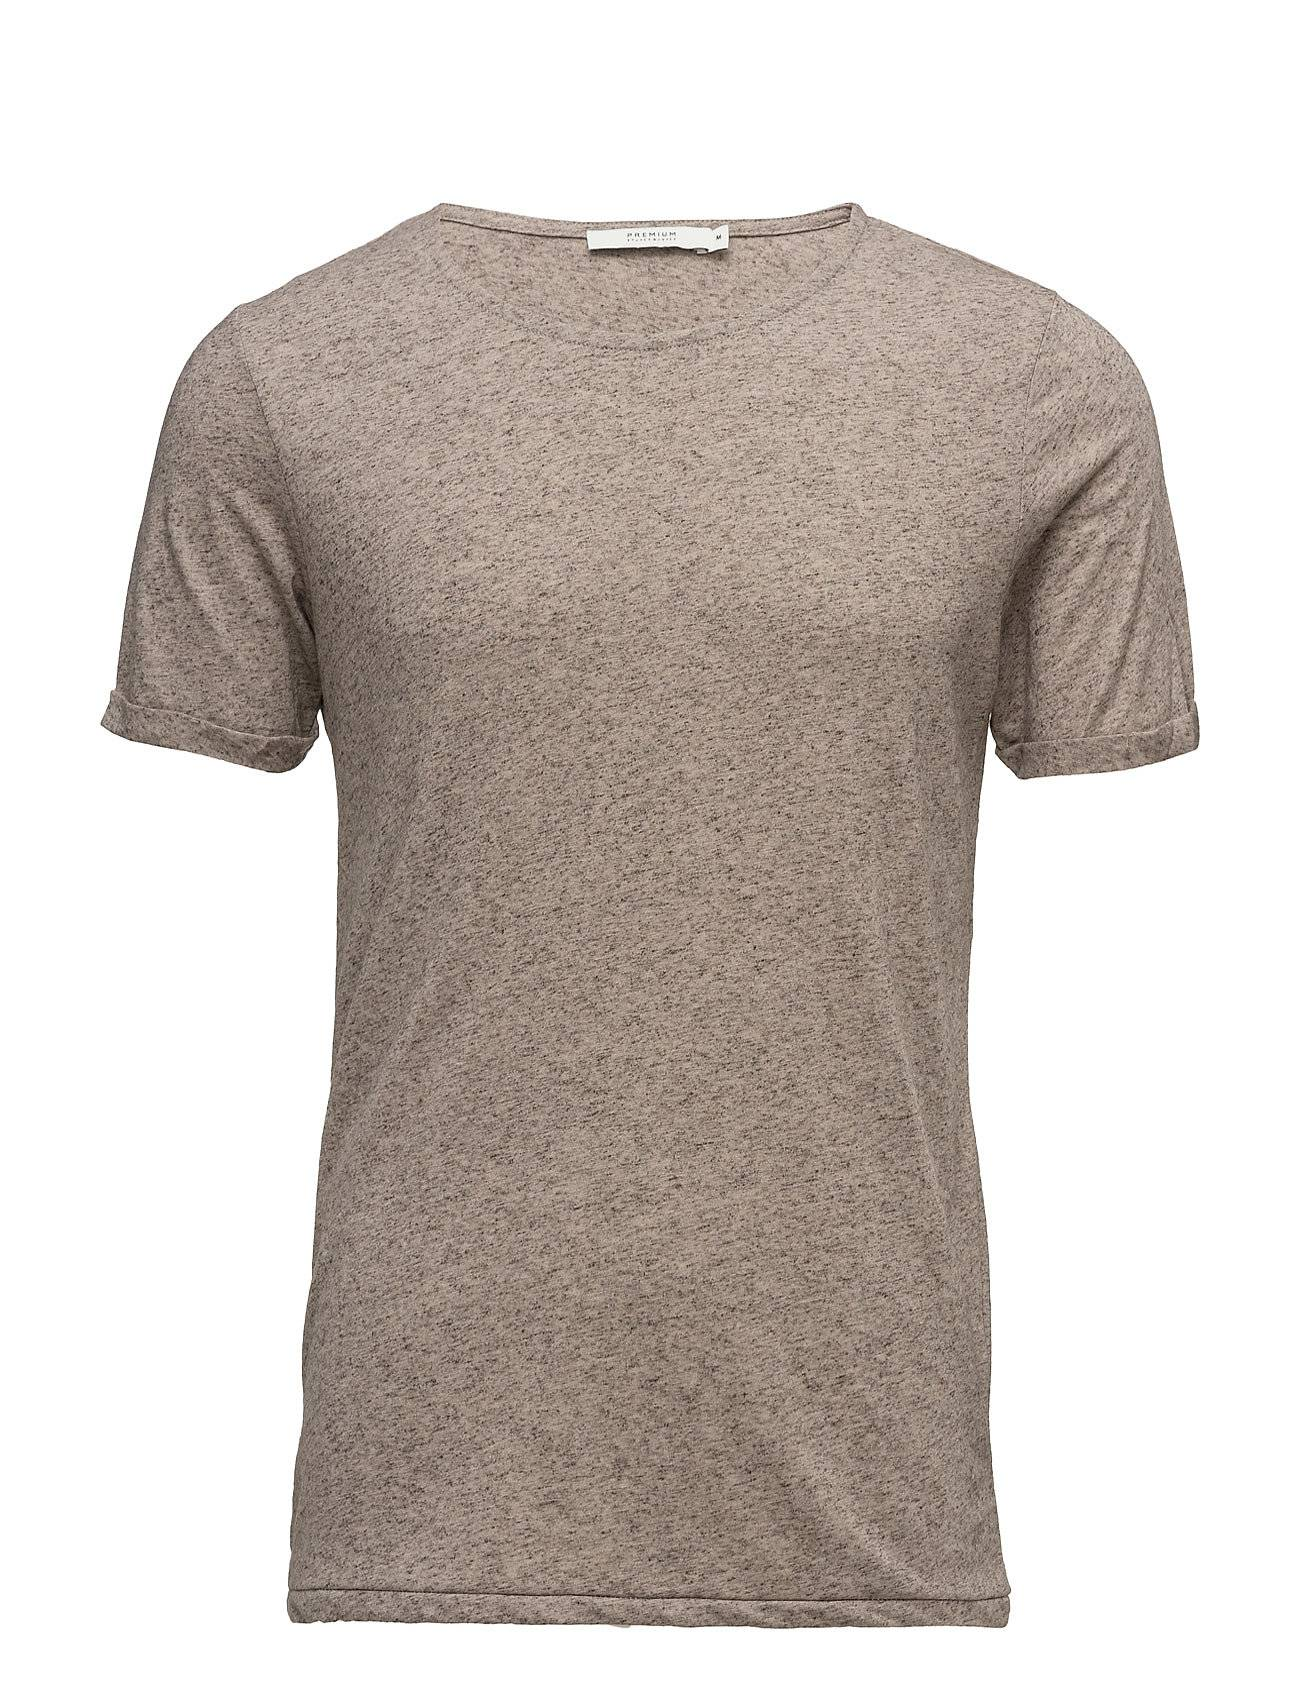 Jack & Jones Premium Jprrandy Tee Ss Crew Neck Sts